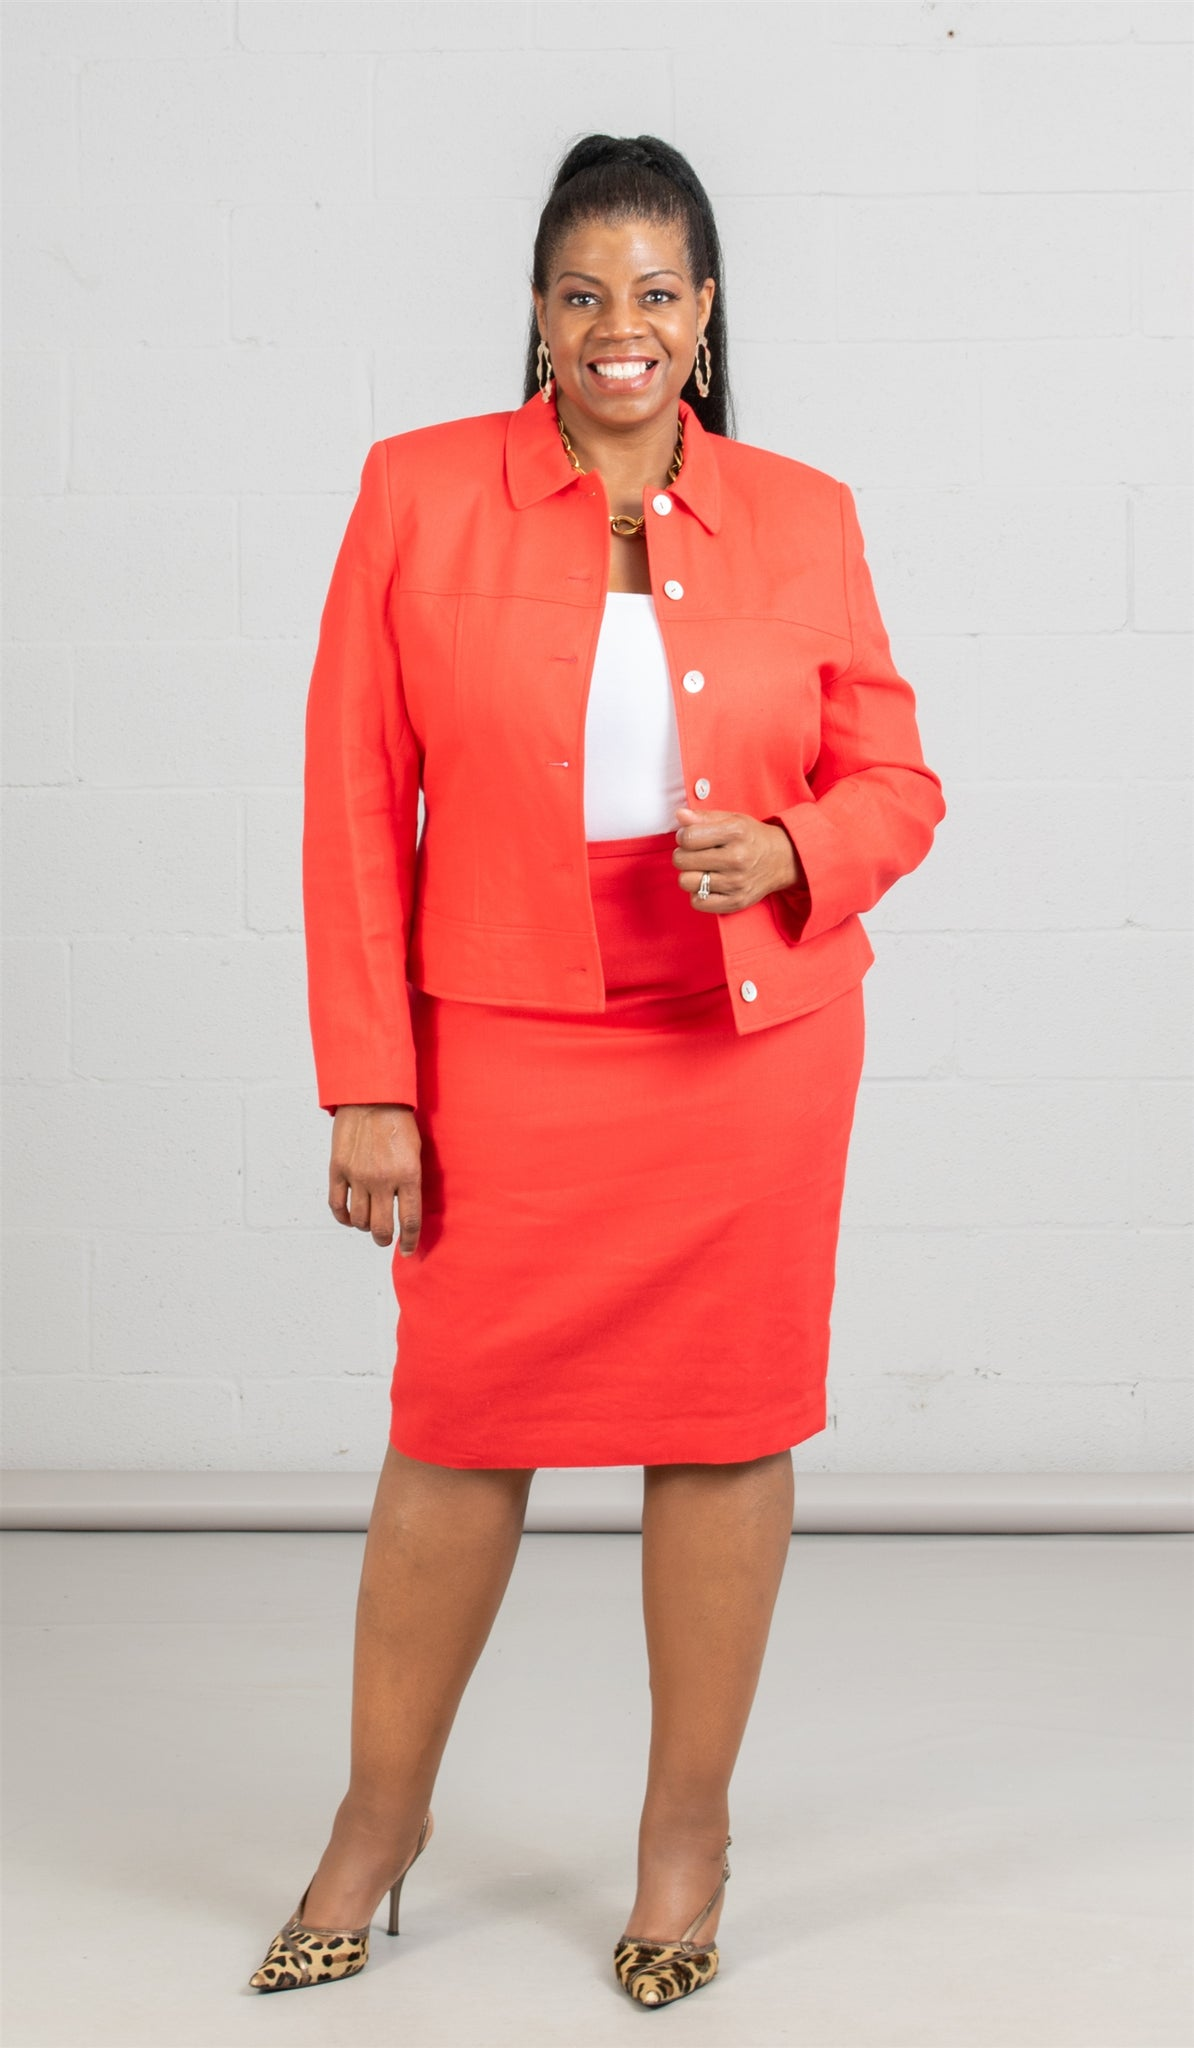 women business skirt suit 90351 red church suits for less women business skirt suit 90351 red